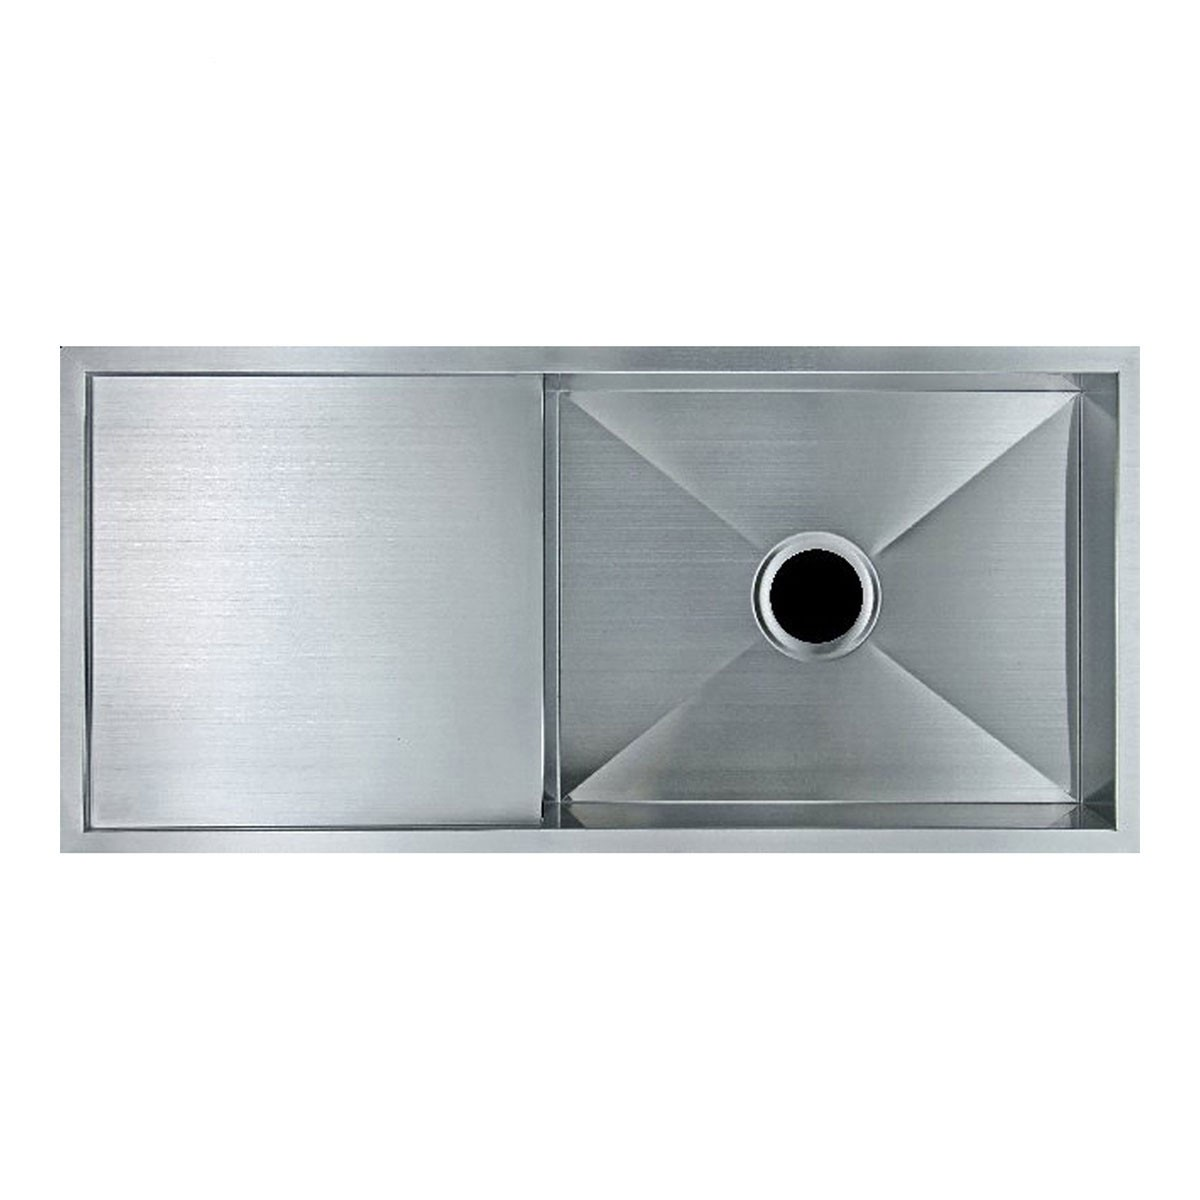 Stainless Steel Single Bowl Kitchen Sink (ABR2918-R0) | Decoraport ...